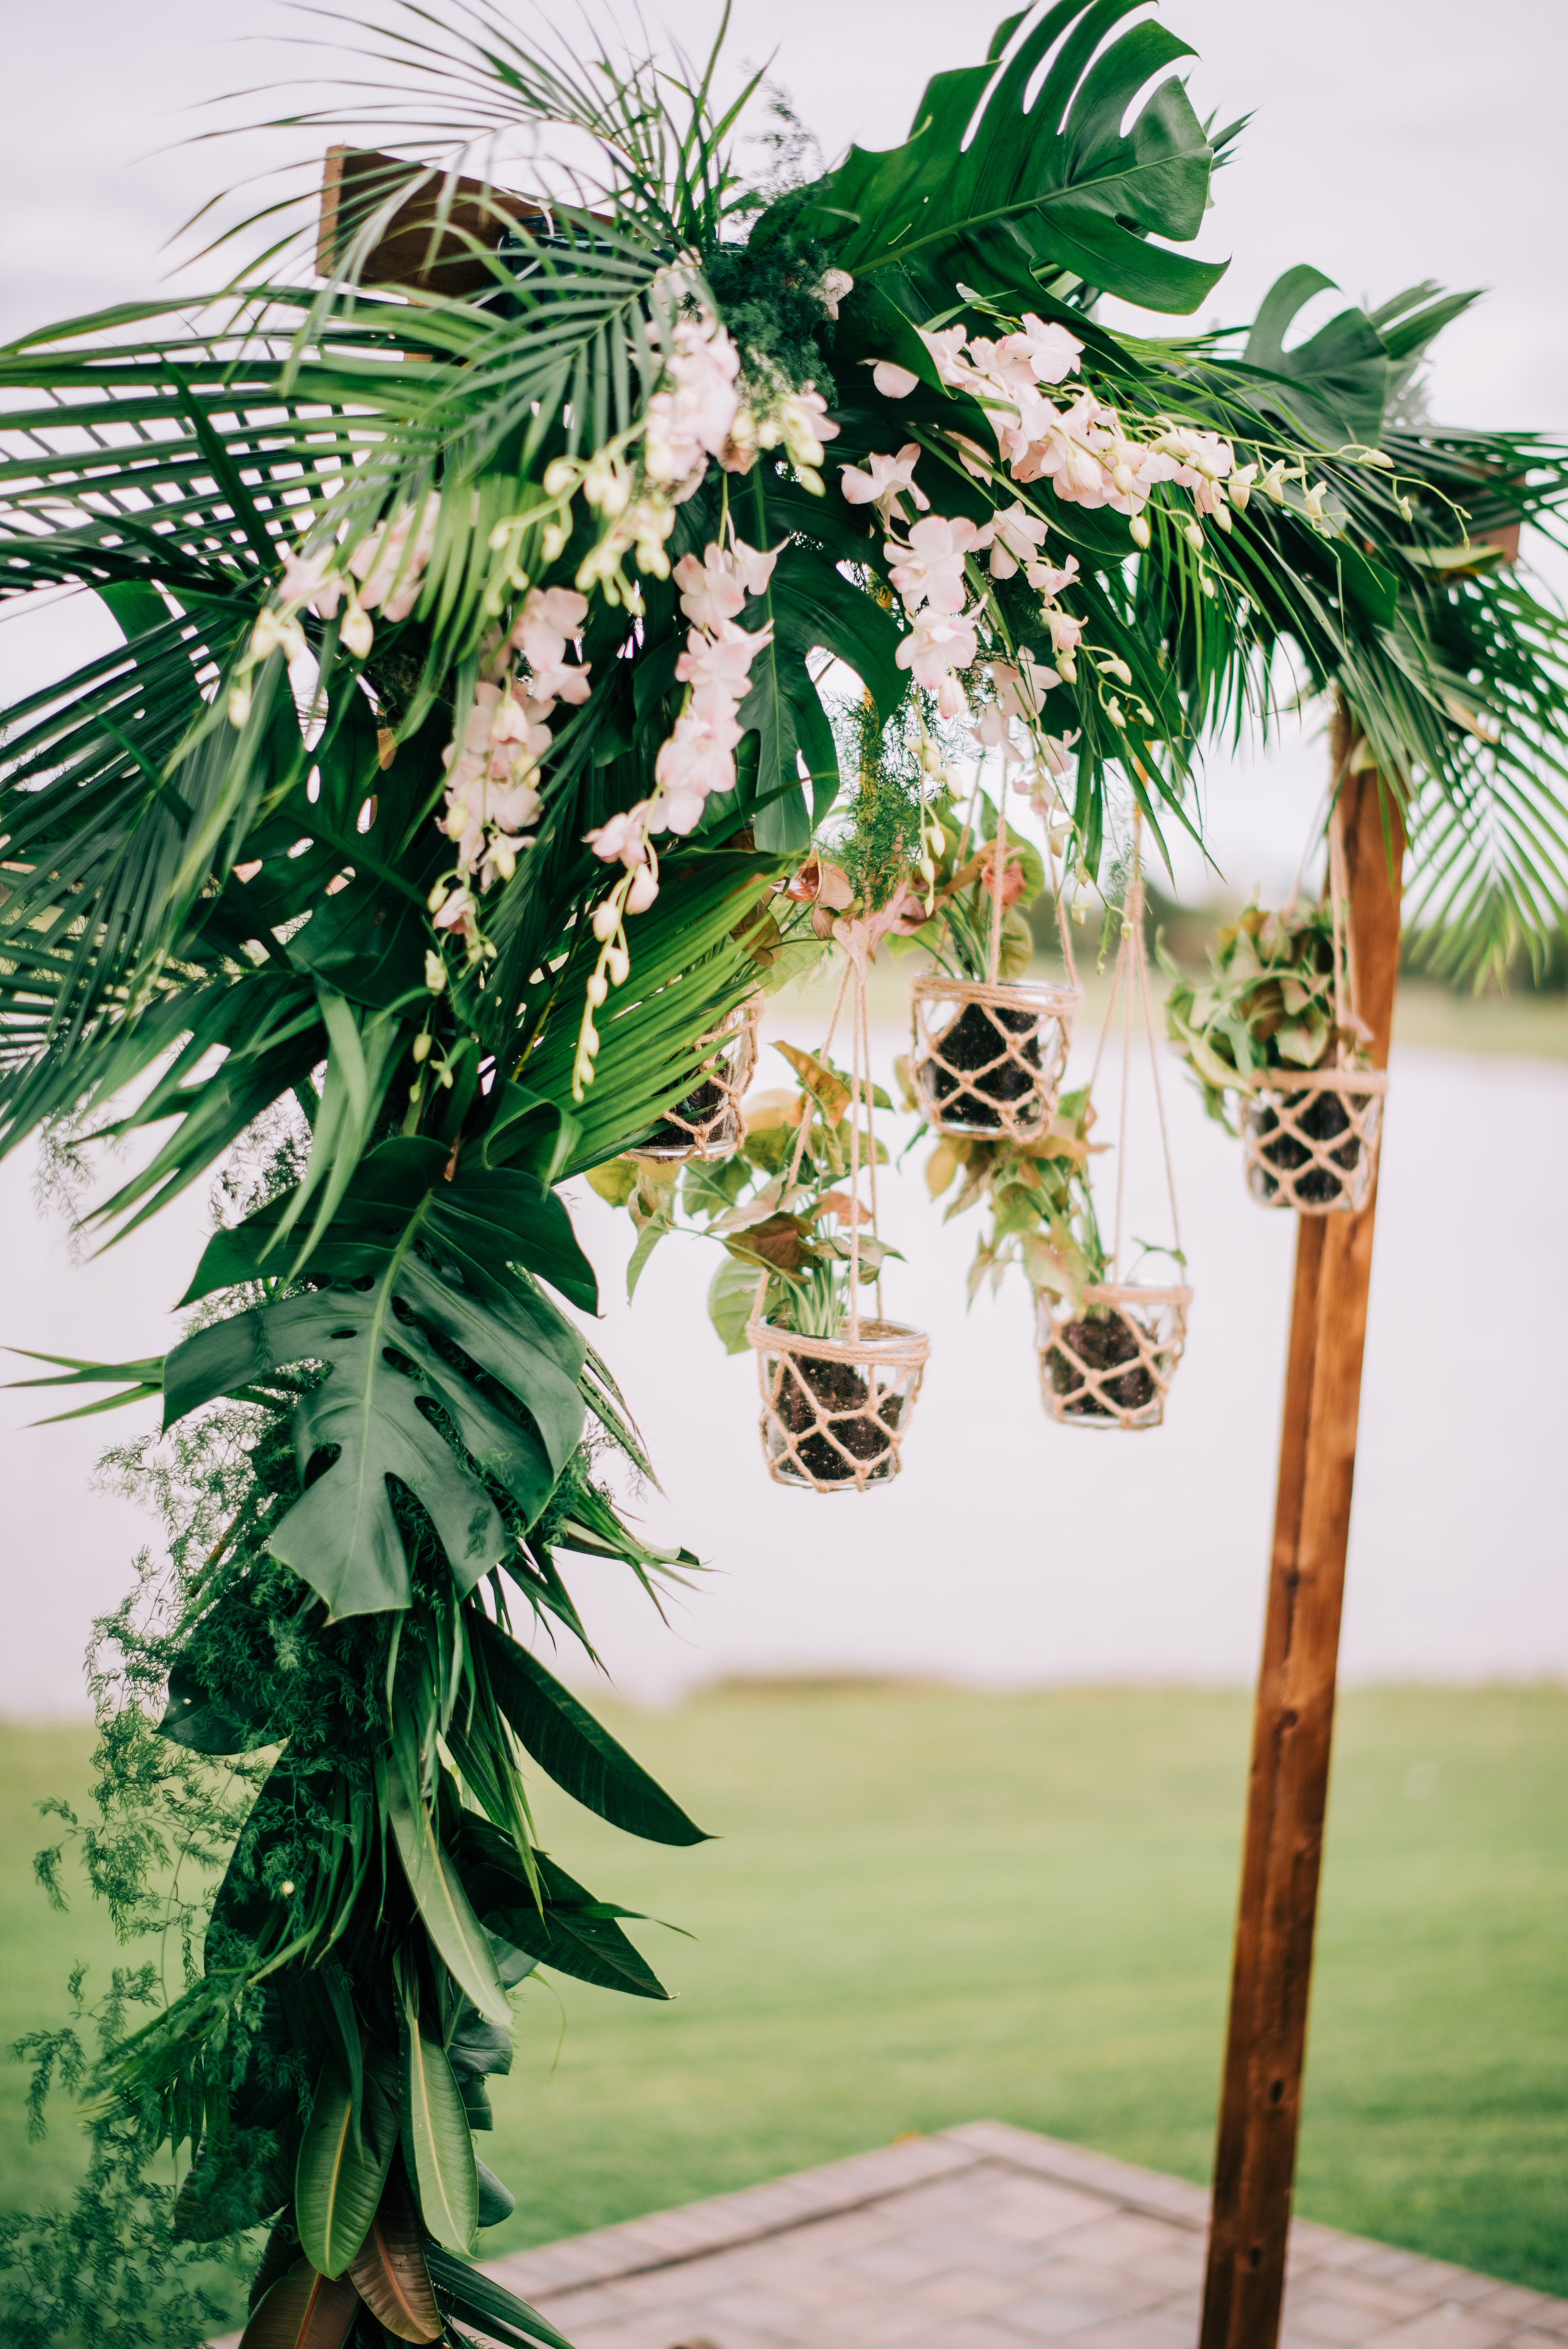 18 tropical wedding arch tropical leaves orchid arch hanging pots arch macrame flower pots Life Design Events photos by Josh Snyder Photography.jpg